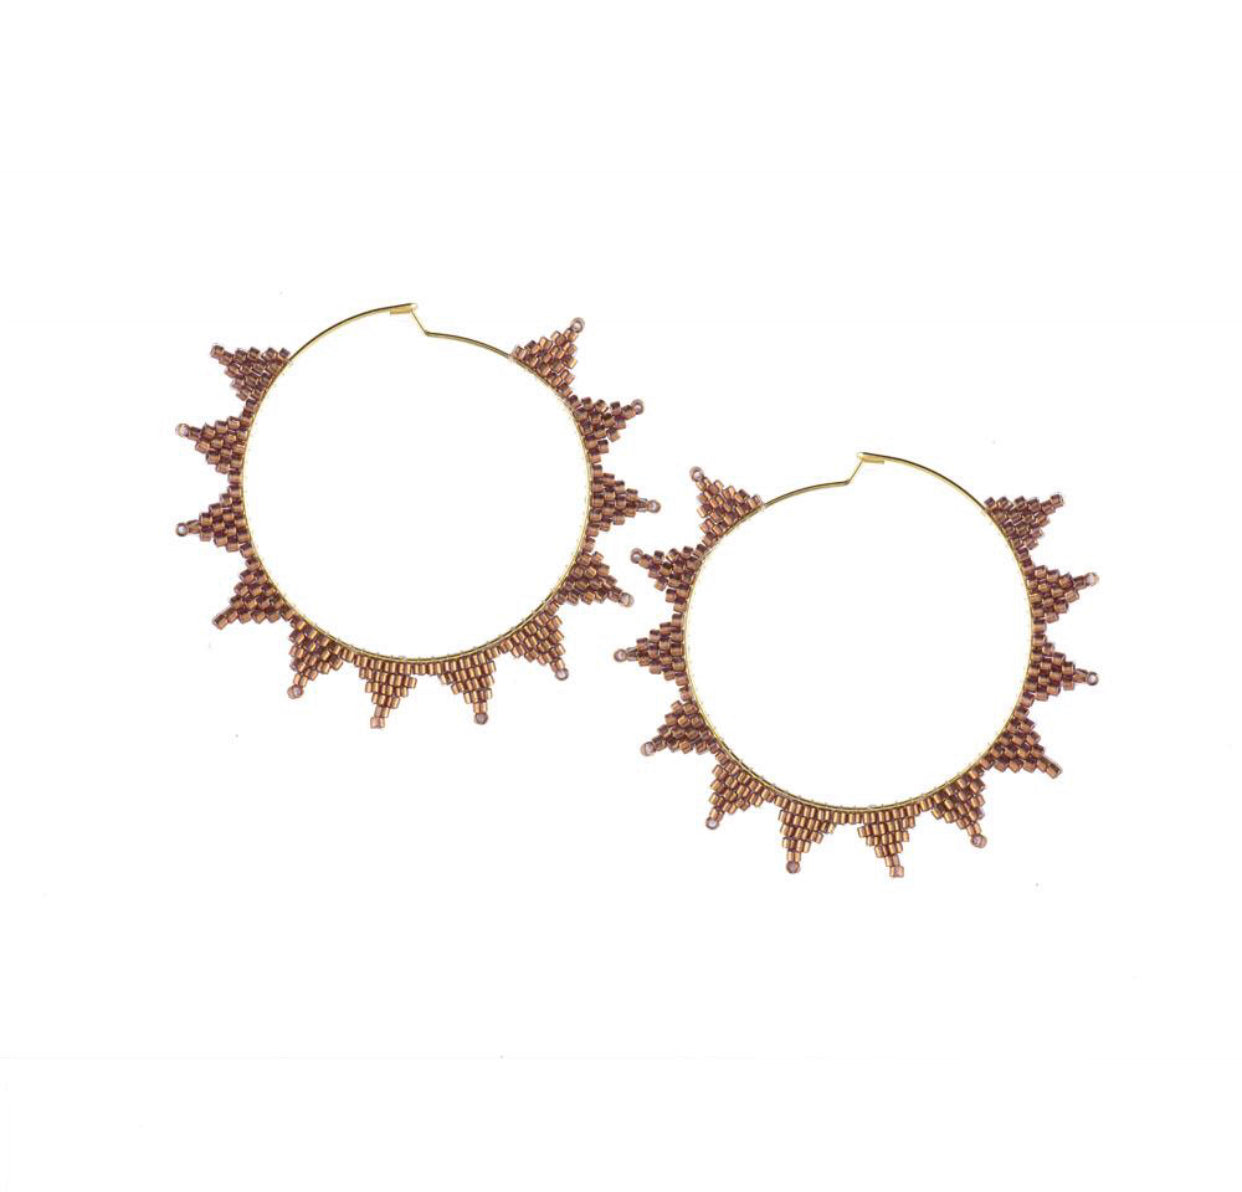 Mishky - Shooting Stars earrings